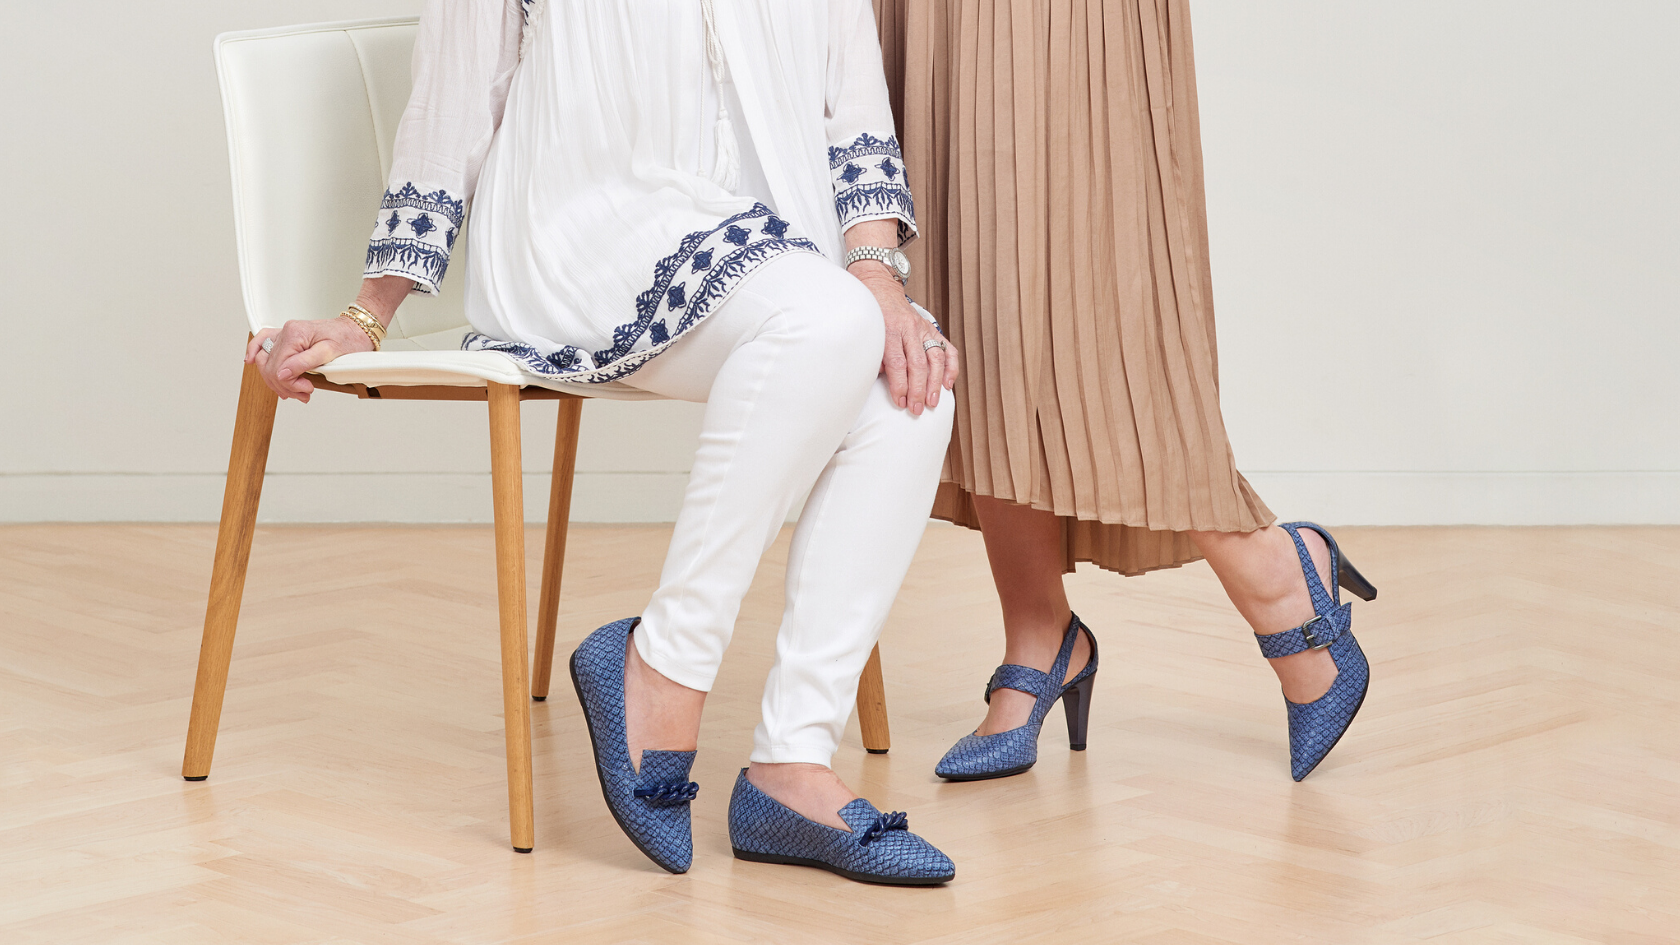 Image of two ladies wearing blue Hispanita shoes. One is sitting down wearing flats and the other is standing up wearing heels.